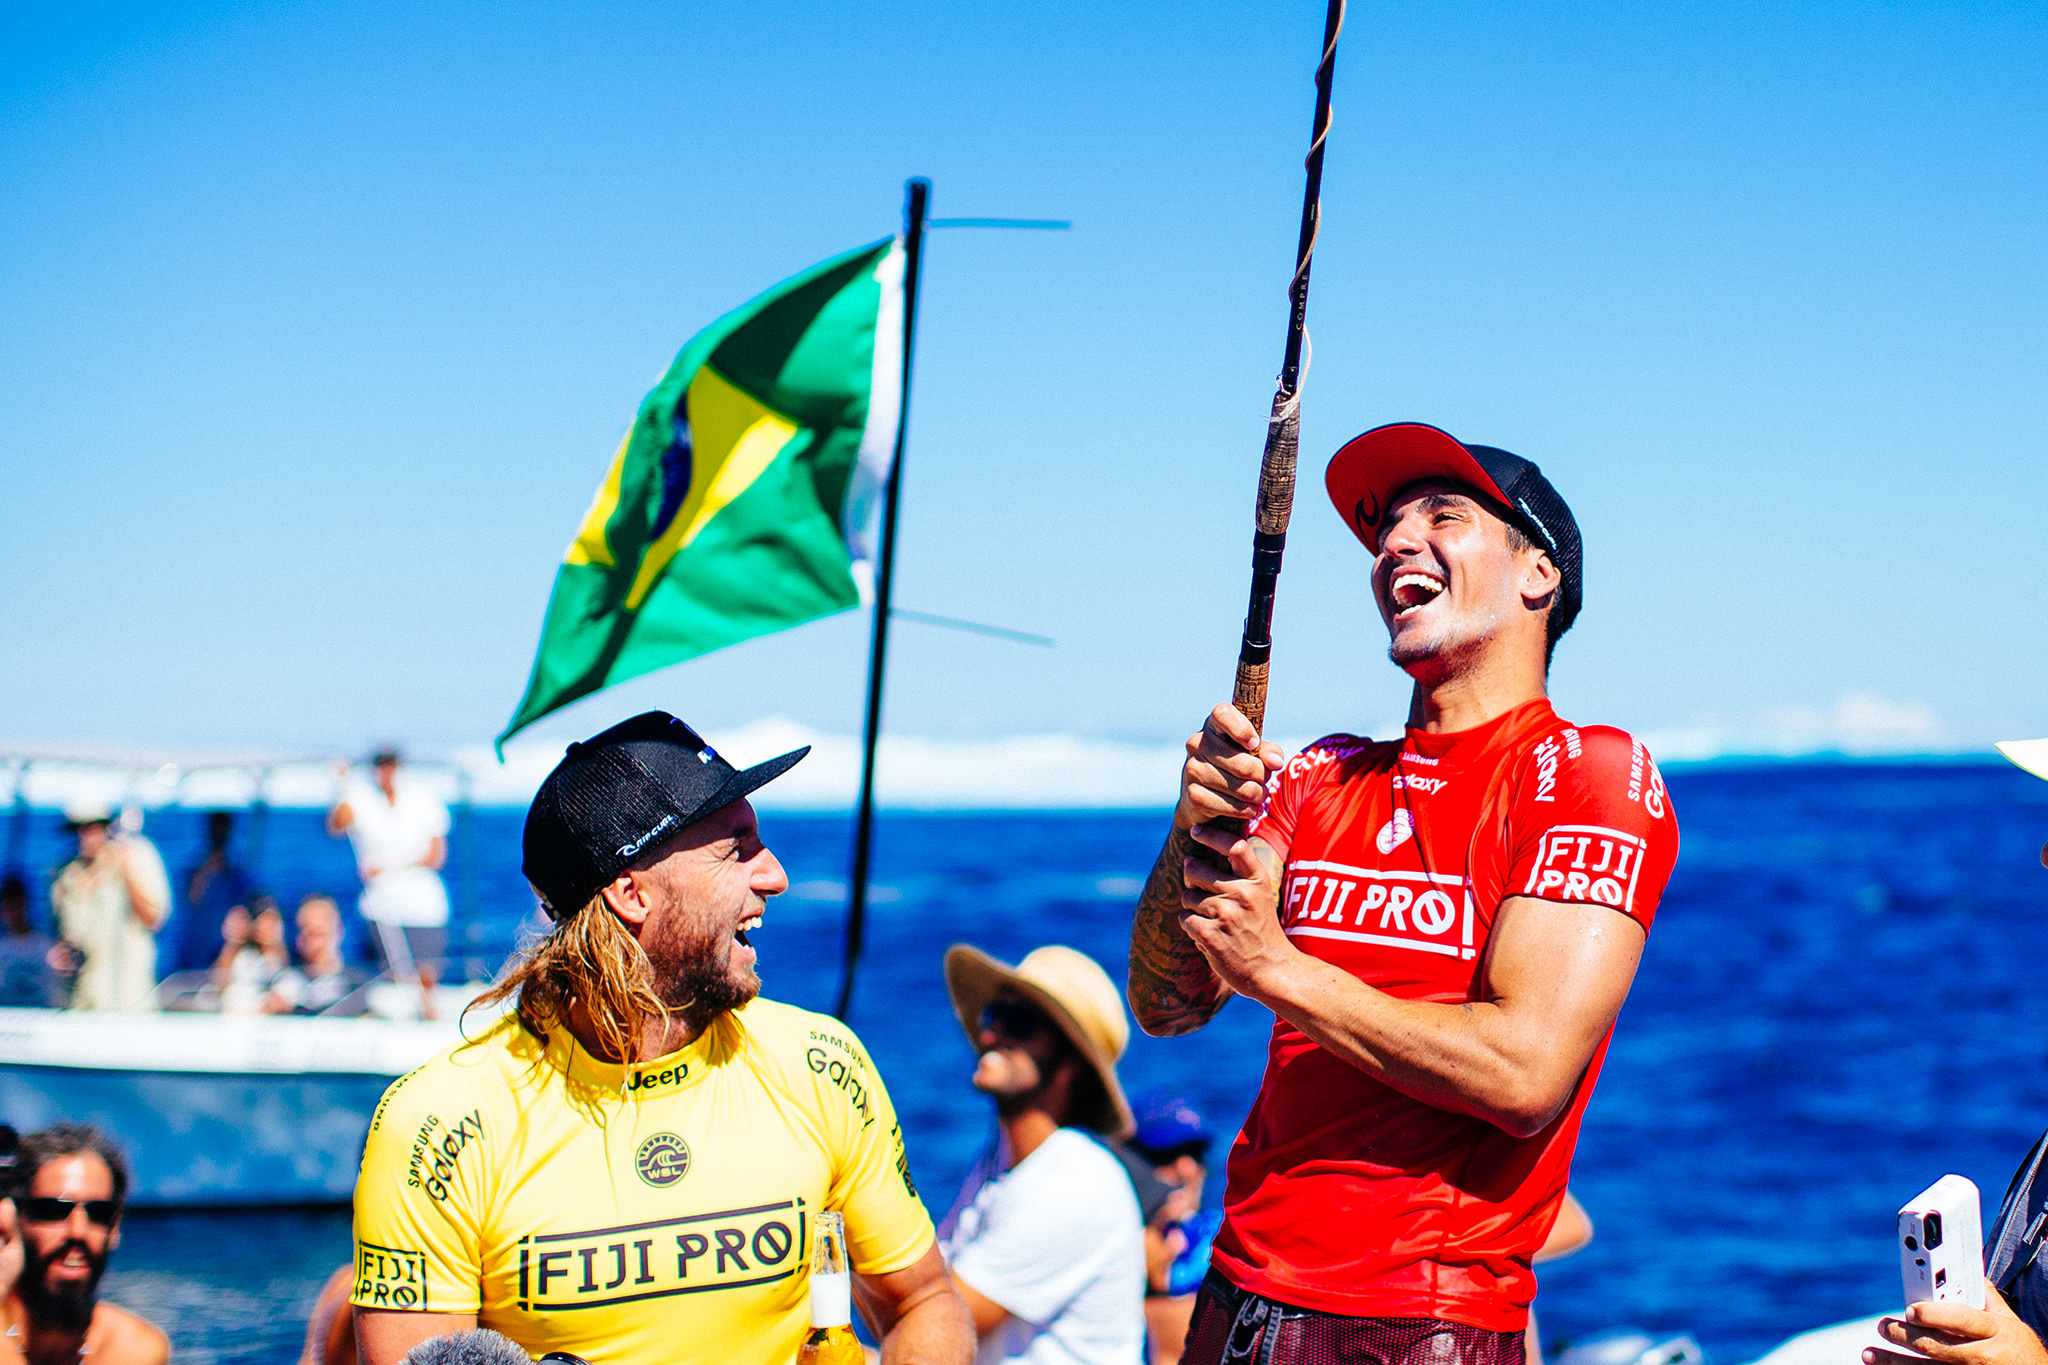 Gabriel Medina of Brasil (pictured) celebrates his victory alongside runner and his opponent Matt Wilkinson of Australia (yellow) at the Fiji Pro at Cloudbreak on Friday June 17, 2016.  PHOTO: © WSL/ Sloane @edsloanephoto This image is the copyright of  the World Surf League and is provided royalty free for editorial use only, in all media now known or hereafter created. No commercial rights granted. Sale or license of the images is prohibited. This image is a factually accurate rendering of what it depicts and has not been modified or augmented except for standard cropping and toning. ALL RIGHTS RESERVED.